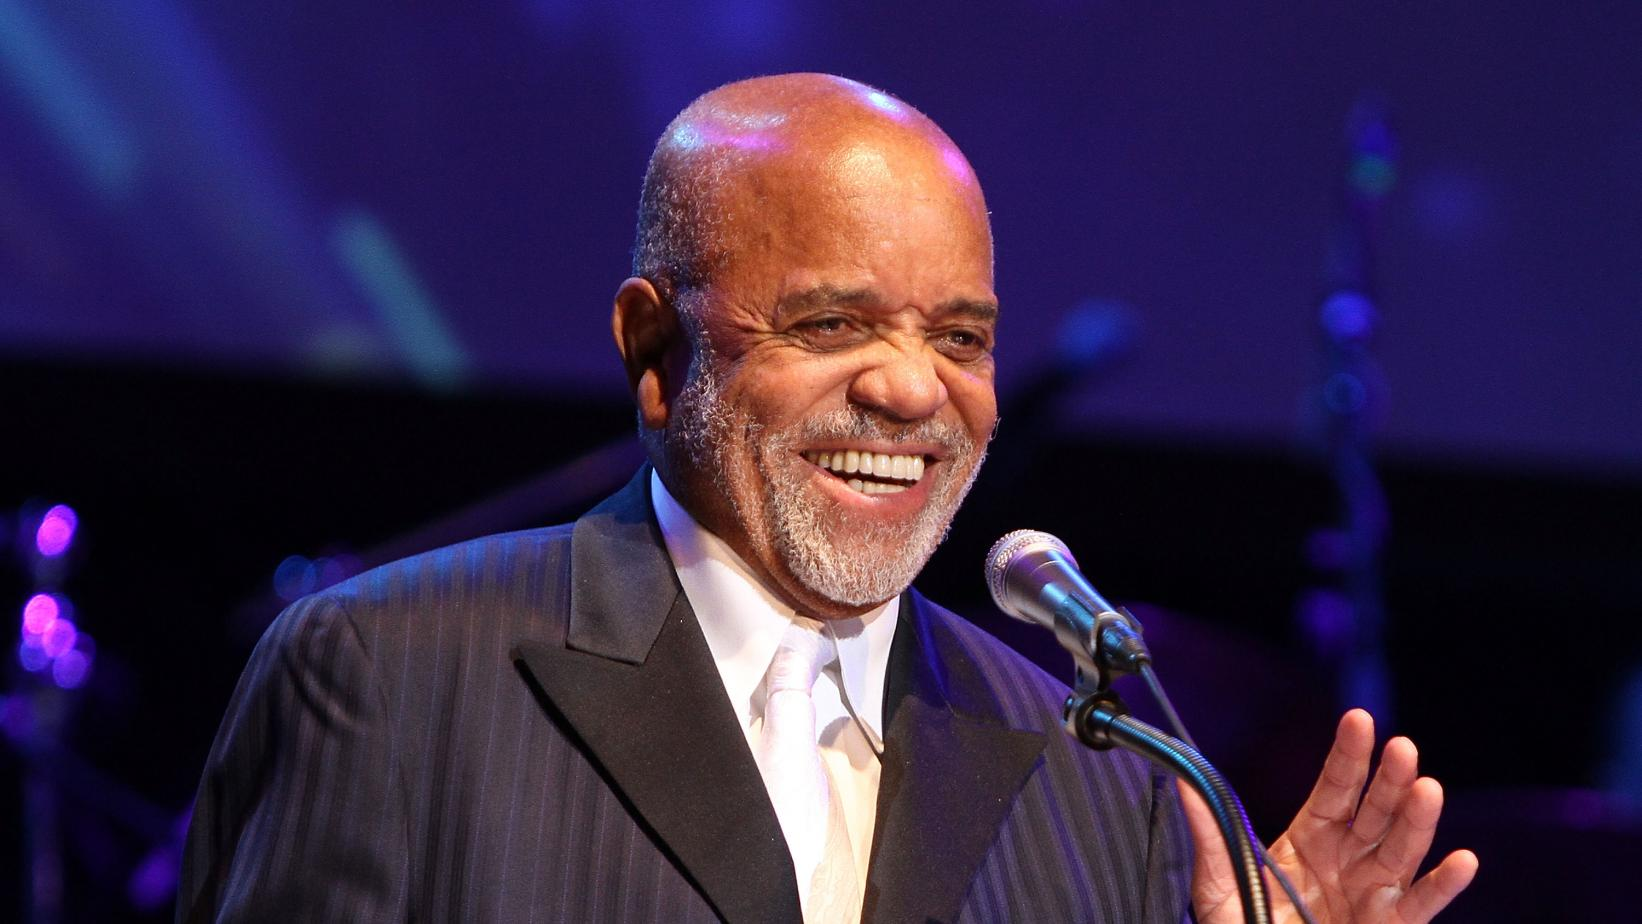 """Diana Ross and the Supremes, """"Where did our love go?"""" https://www.youtube.com/watch?v=t1Ta5TlCBR8 https://en.wikipedia.org/wiki/Berry_Gordy https://www.britannica.com/biography/Berry-Gordy-Jr https://www.biography.com/musician/berry-gordy-jr https://www.rollingstone.com/music/music-features/the-motown-story-how-berry-gordy-jr-created-the-legendary-label-178066/"""